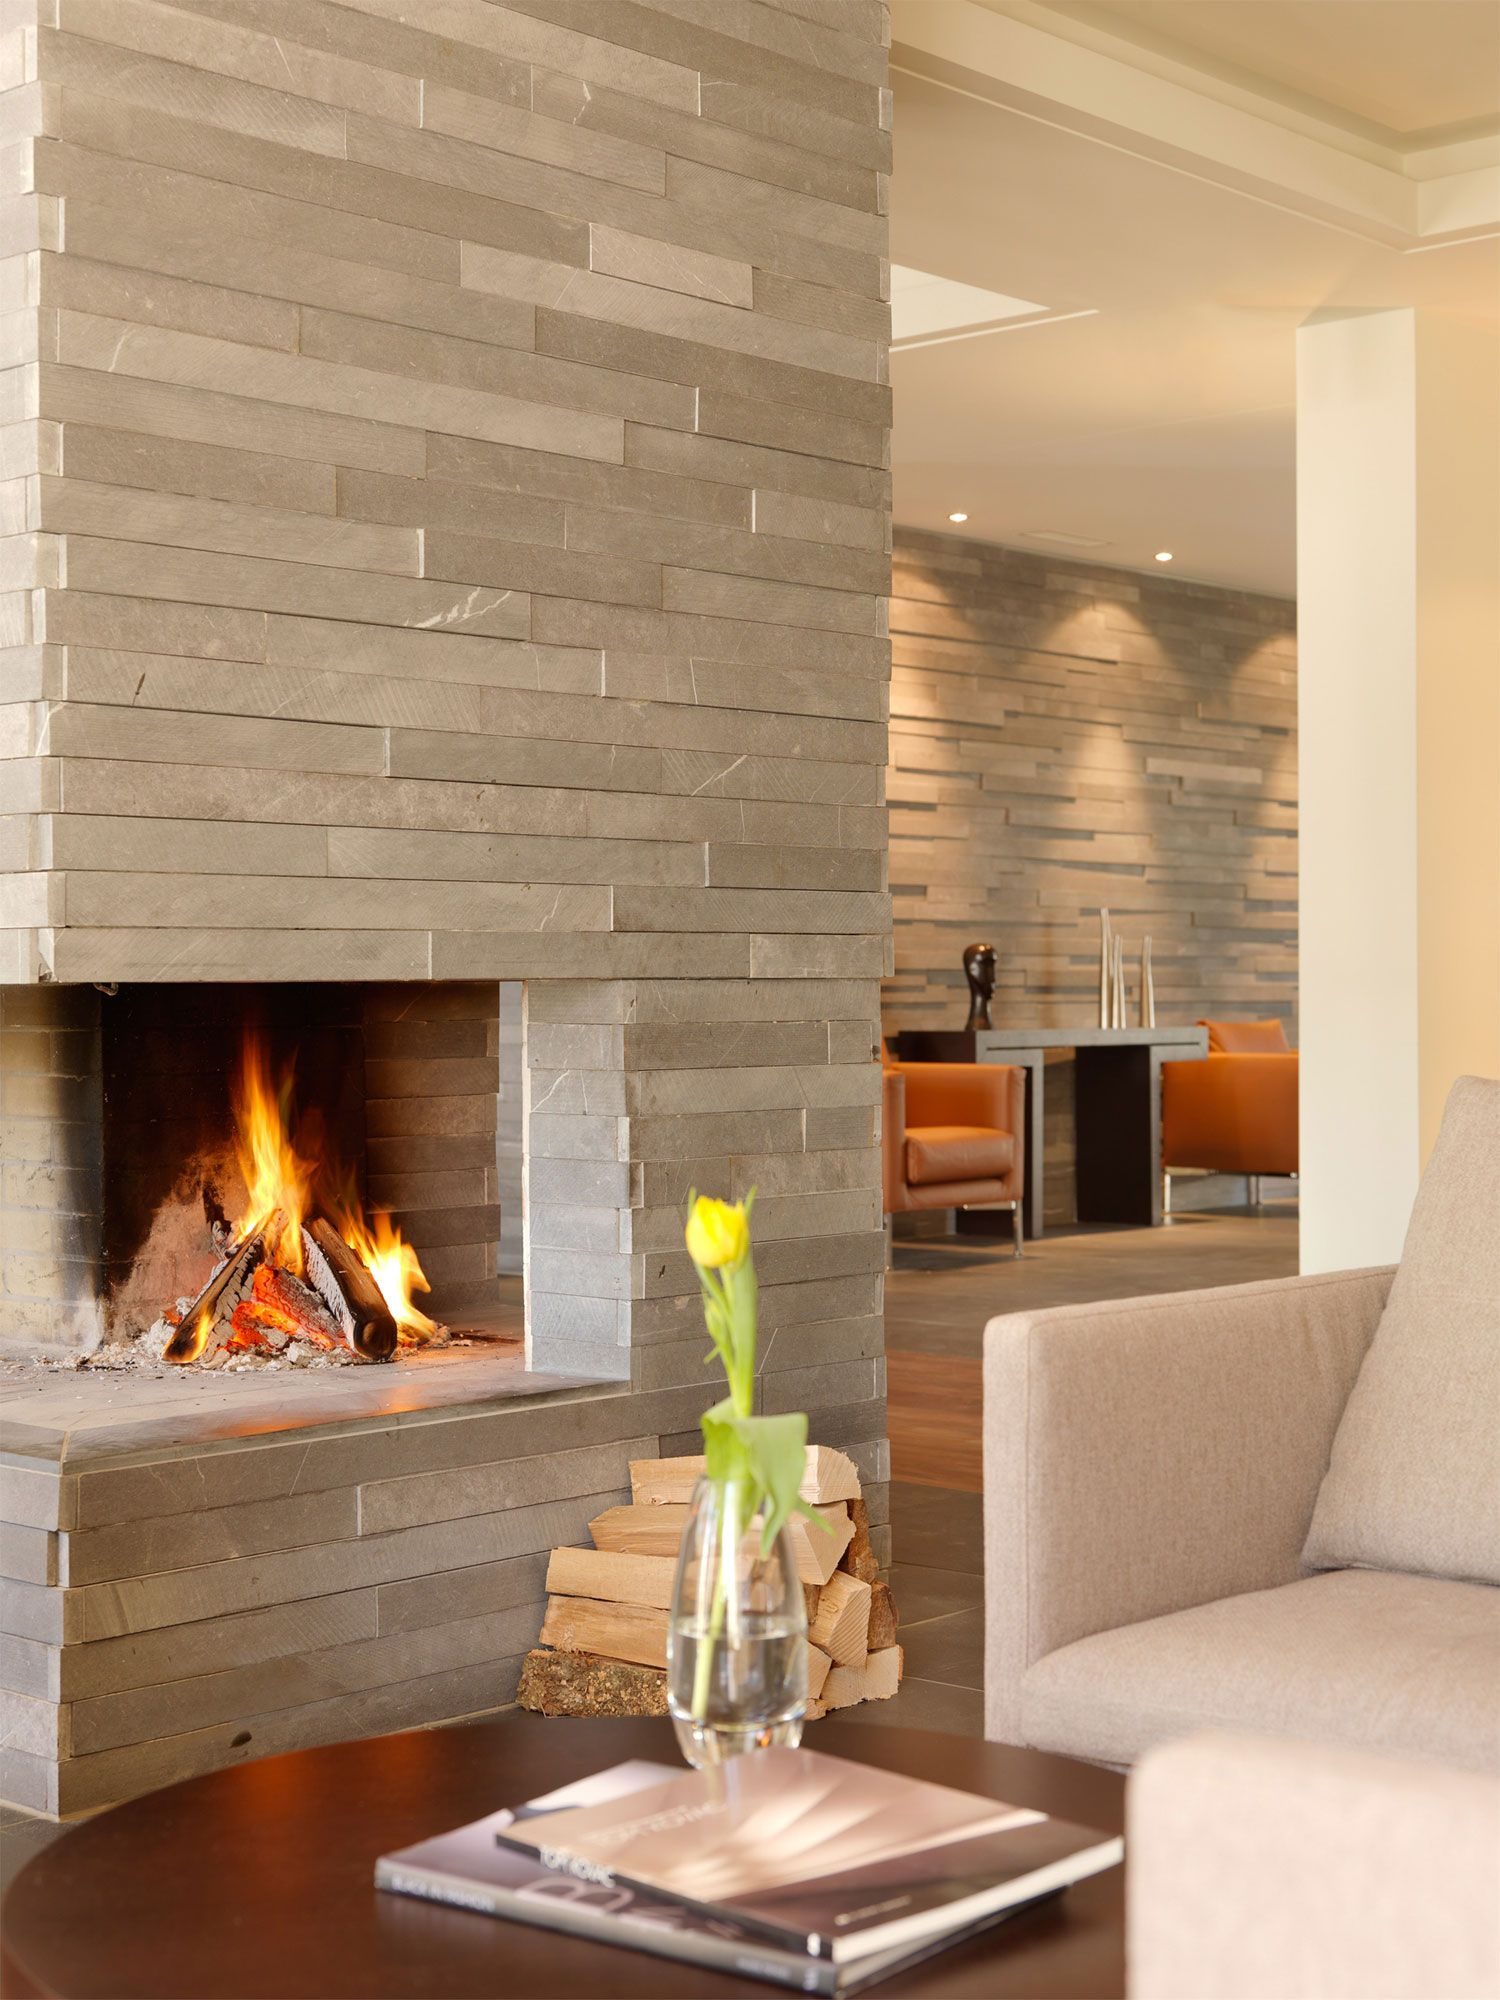 Living Room Fireplace Interior Design 1000 images about fireplace on pinterest architects fireplaces and chalets